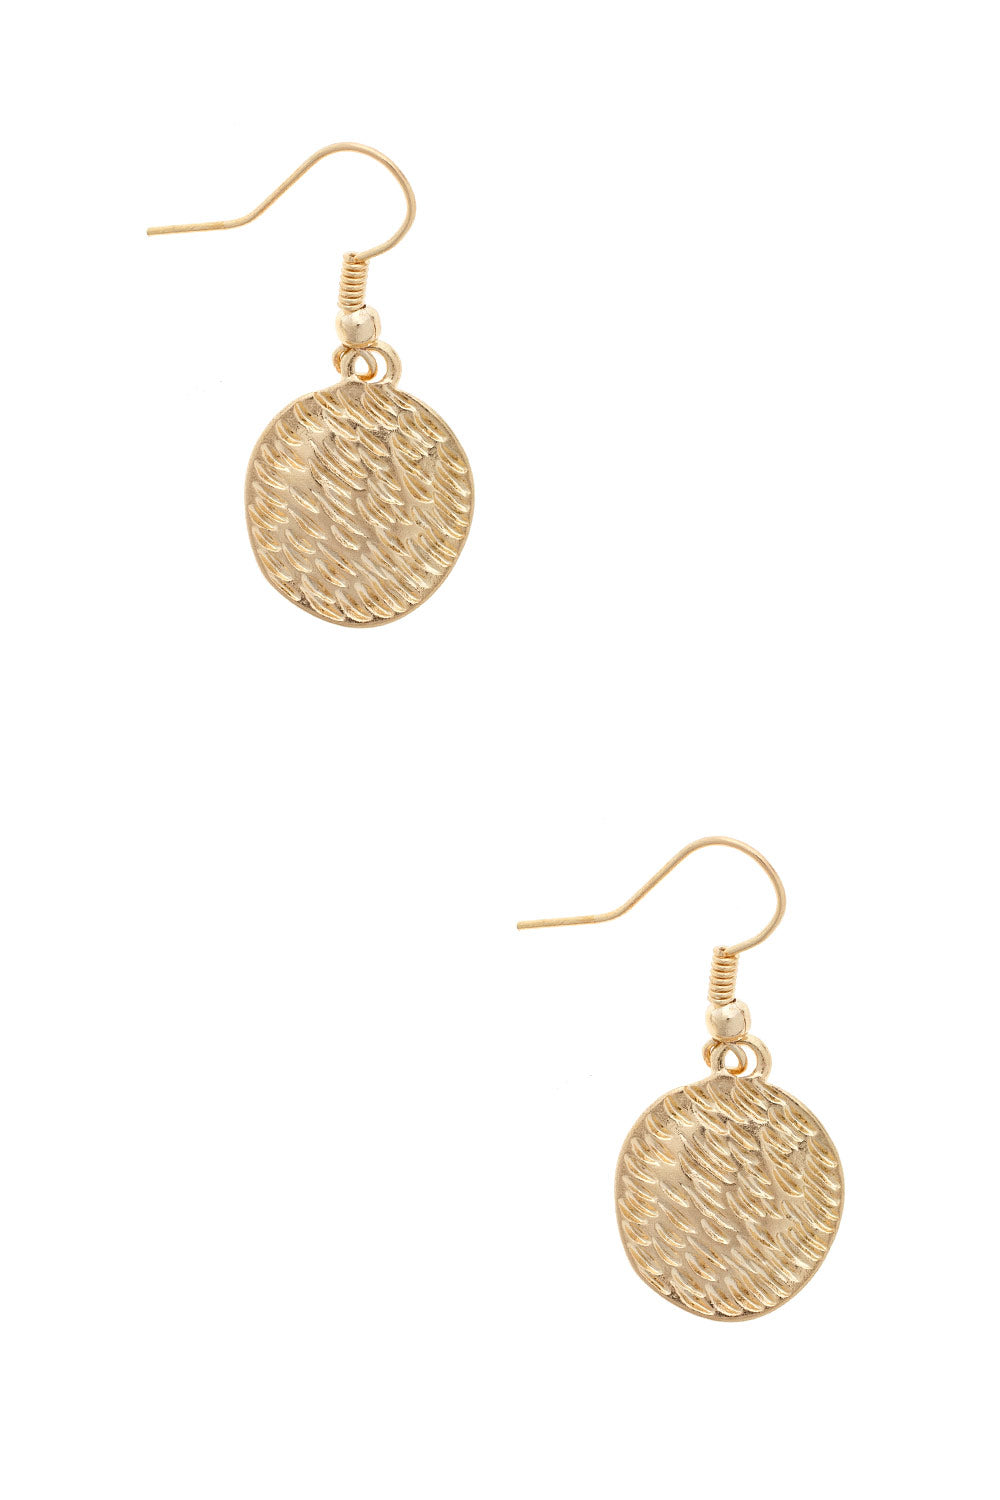 Type 1 Coin Collection Earrings